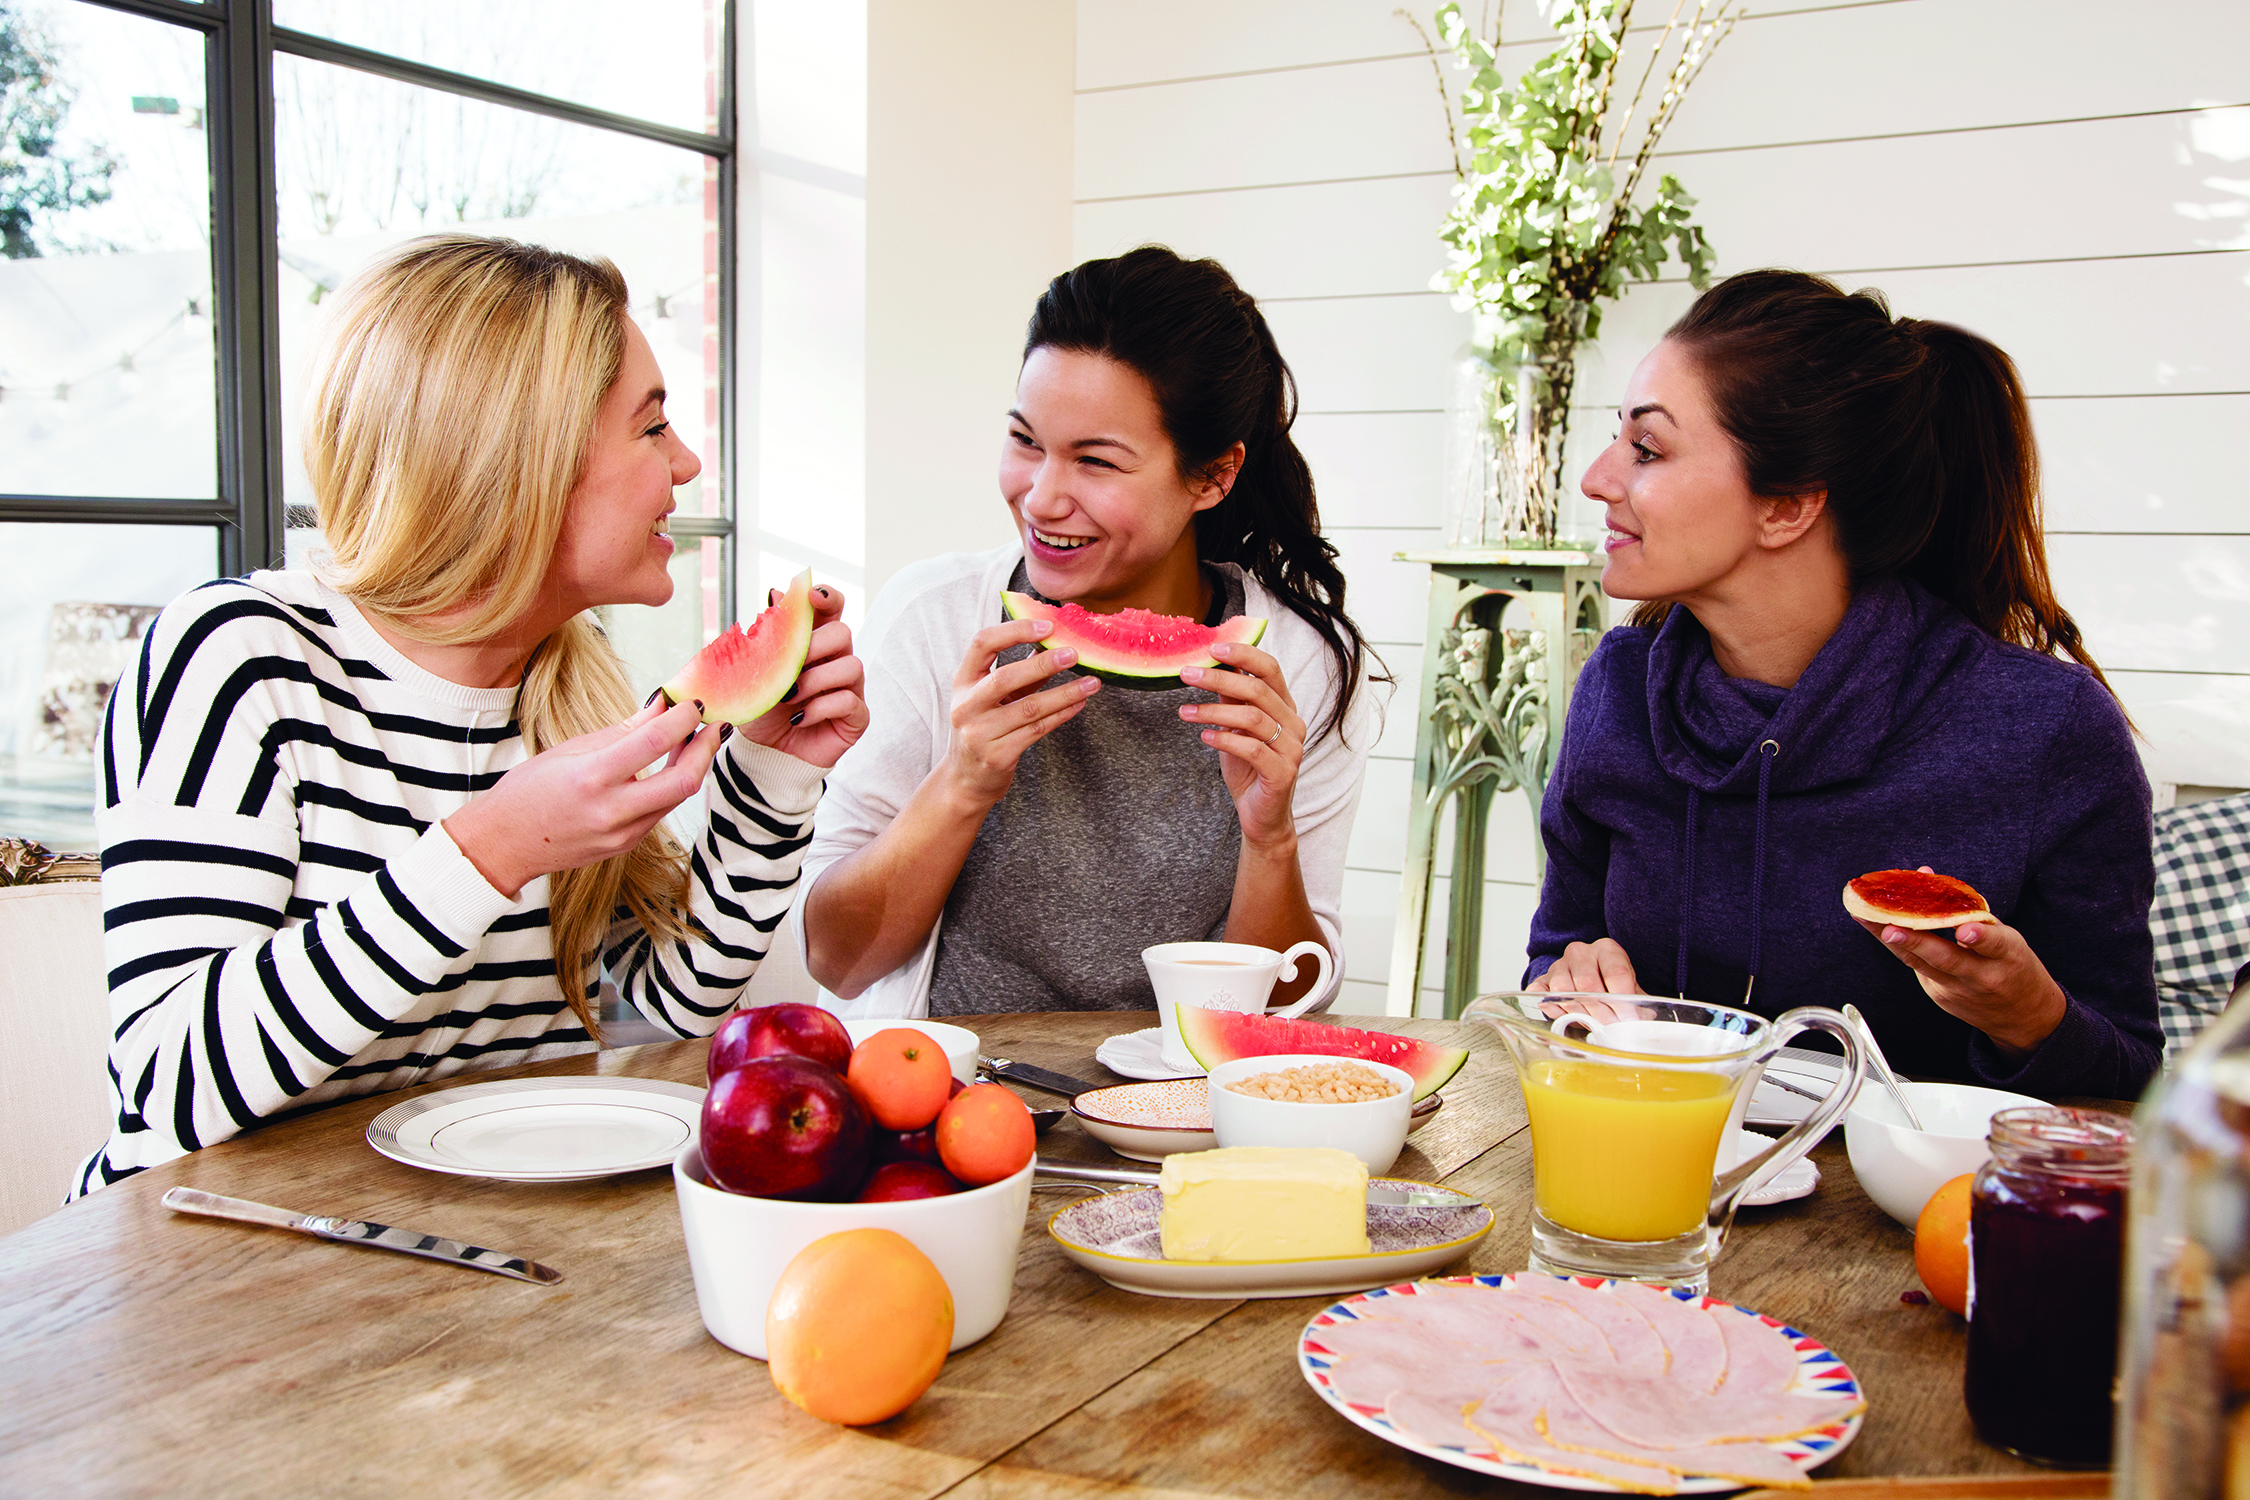 Simple Ways to Make Healthy Lifestyle Choices - Living Magazine